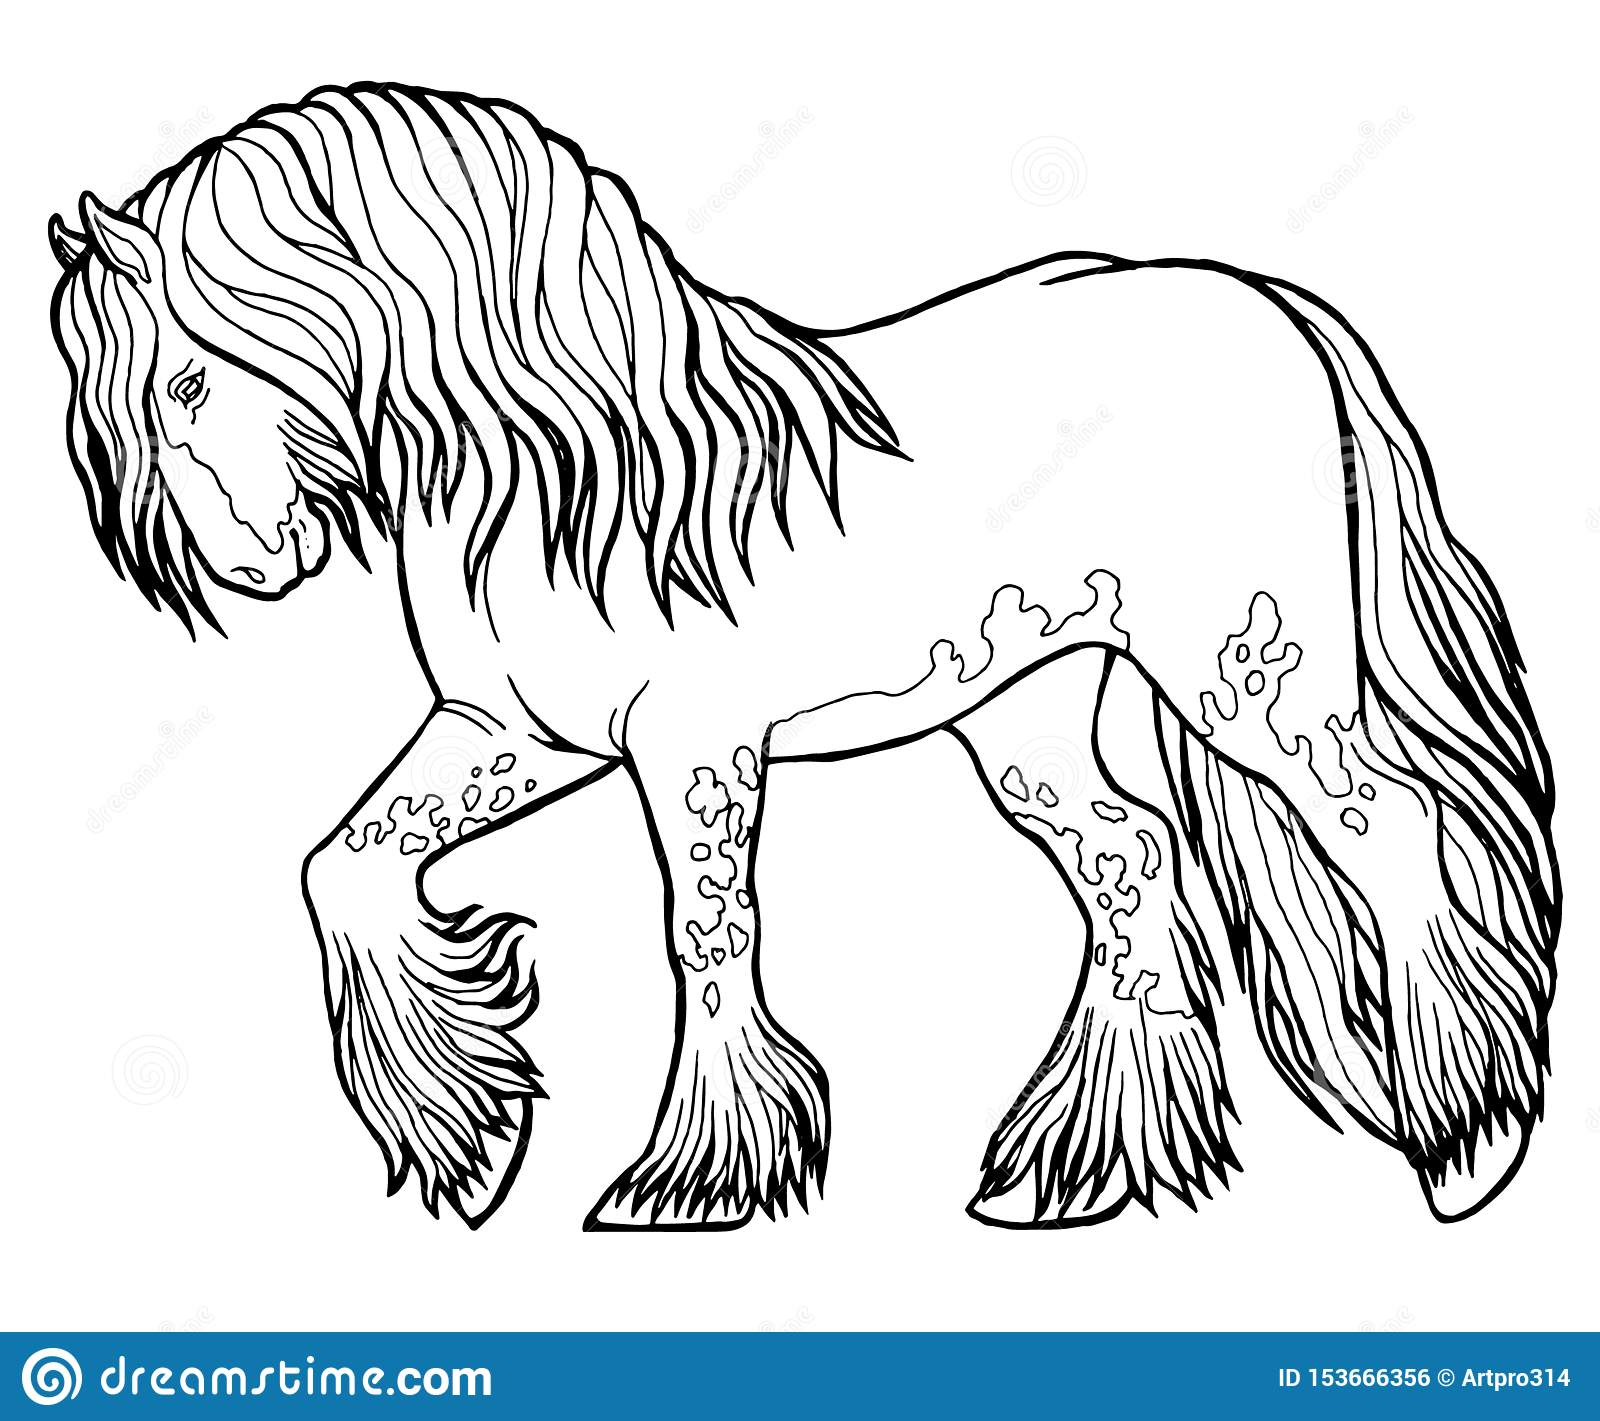 Horse Coloring Book Stock Illustrations 3 633 Horse Coloring Book Stock Illustrations Vectors Clipart Dreamstime